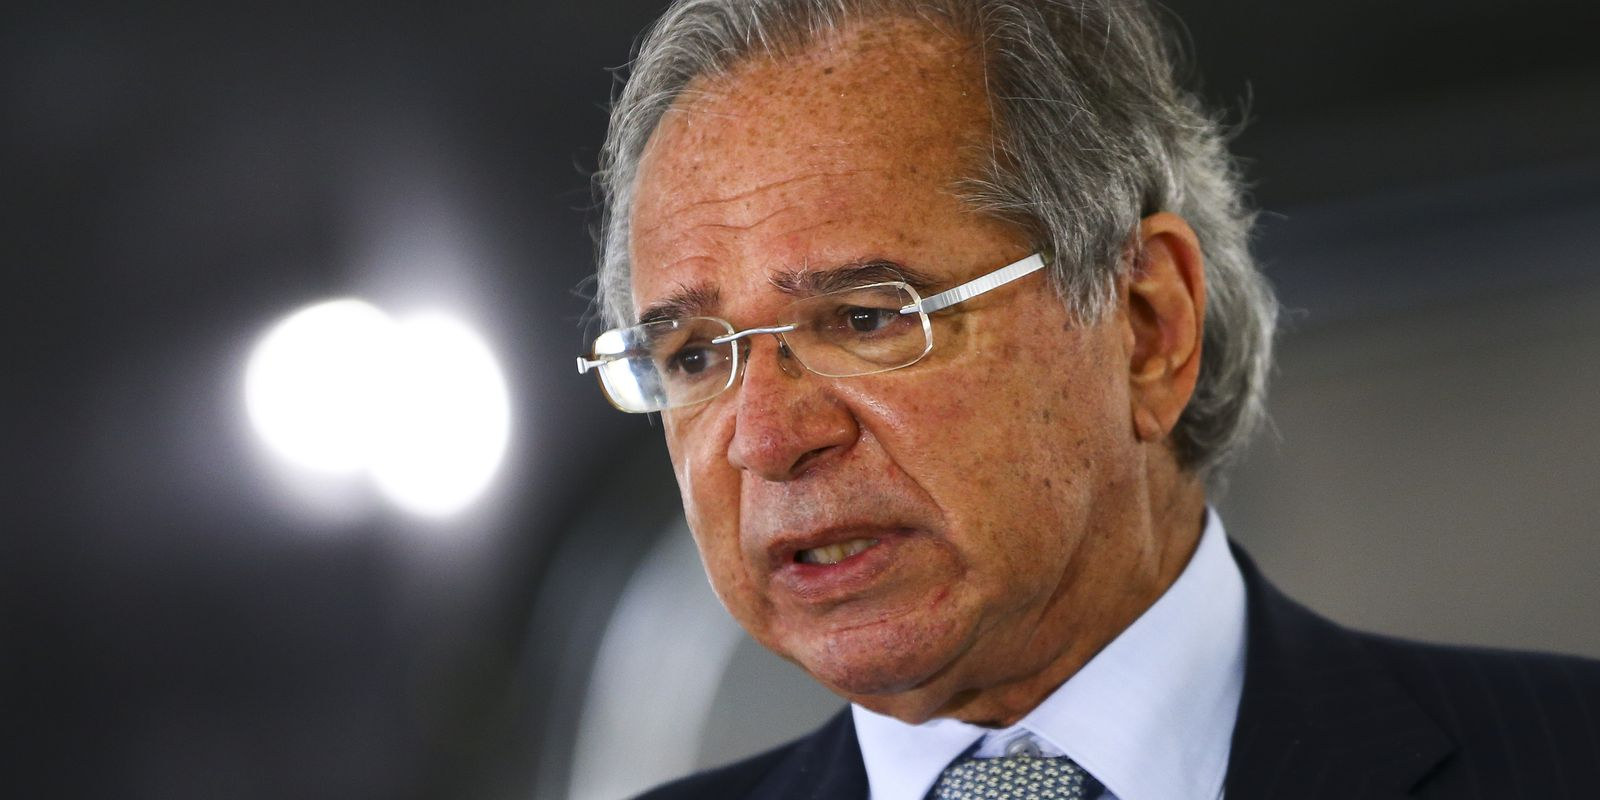 coletiva paulo guedes mcamgo abr 080320211818 7